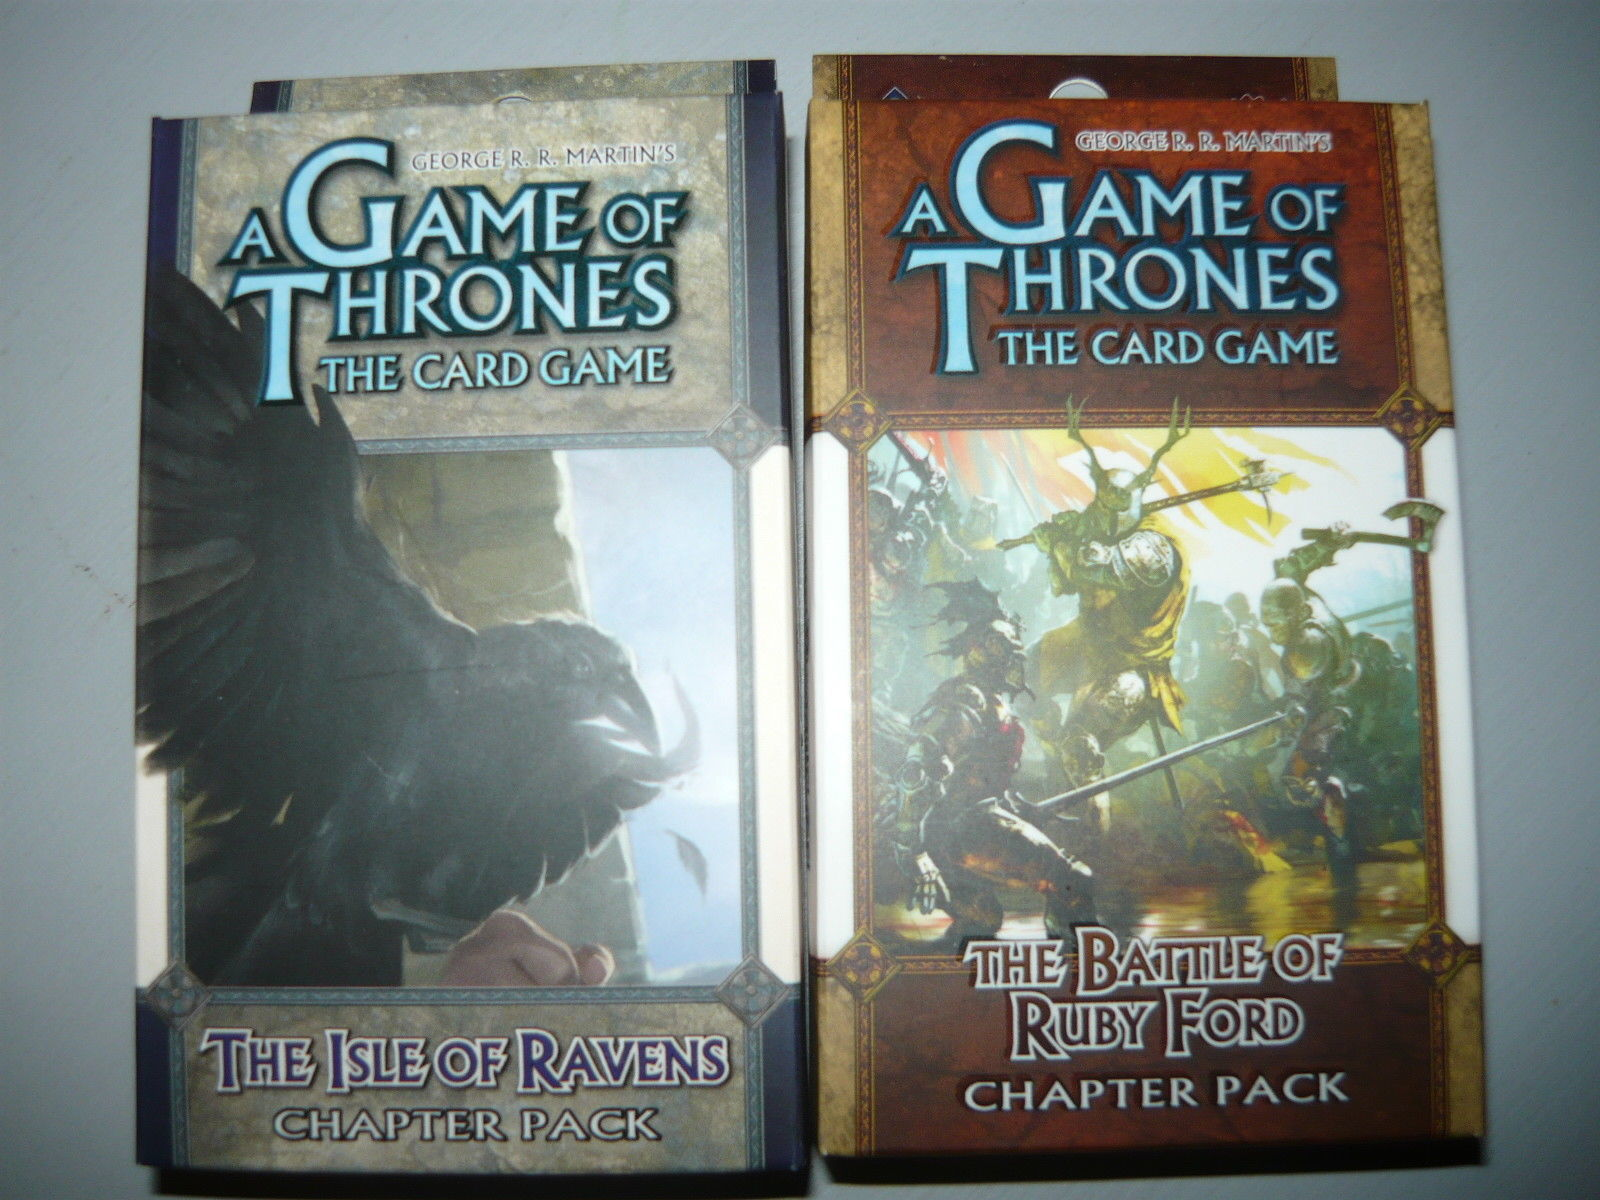 A Game of Thrones chapter pack lot of 2 the isle of ravens battle of ruby ford